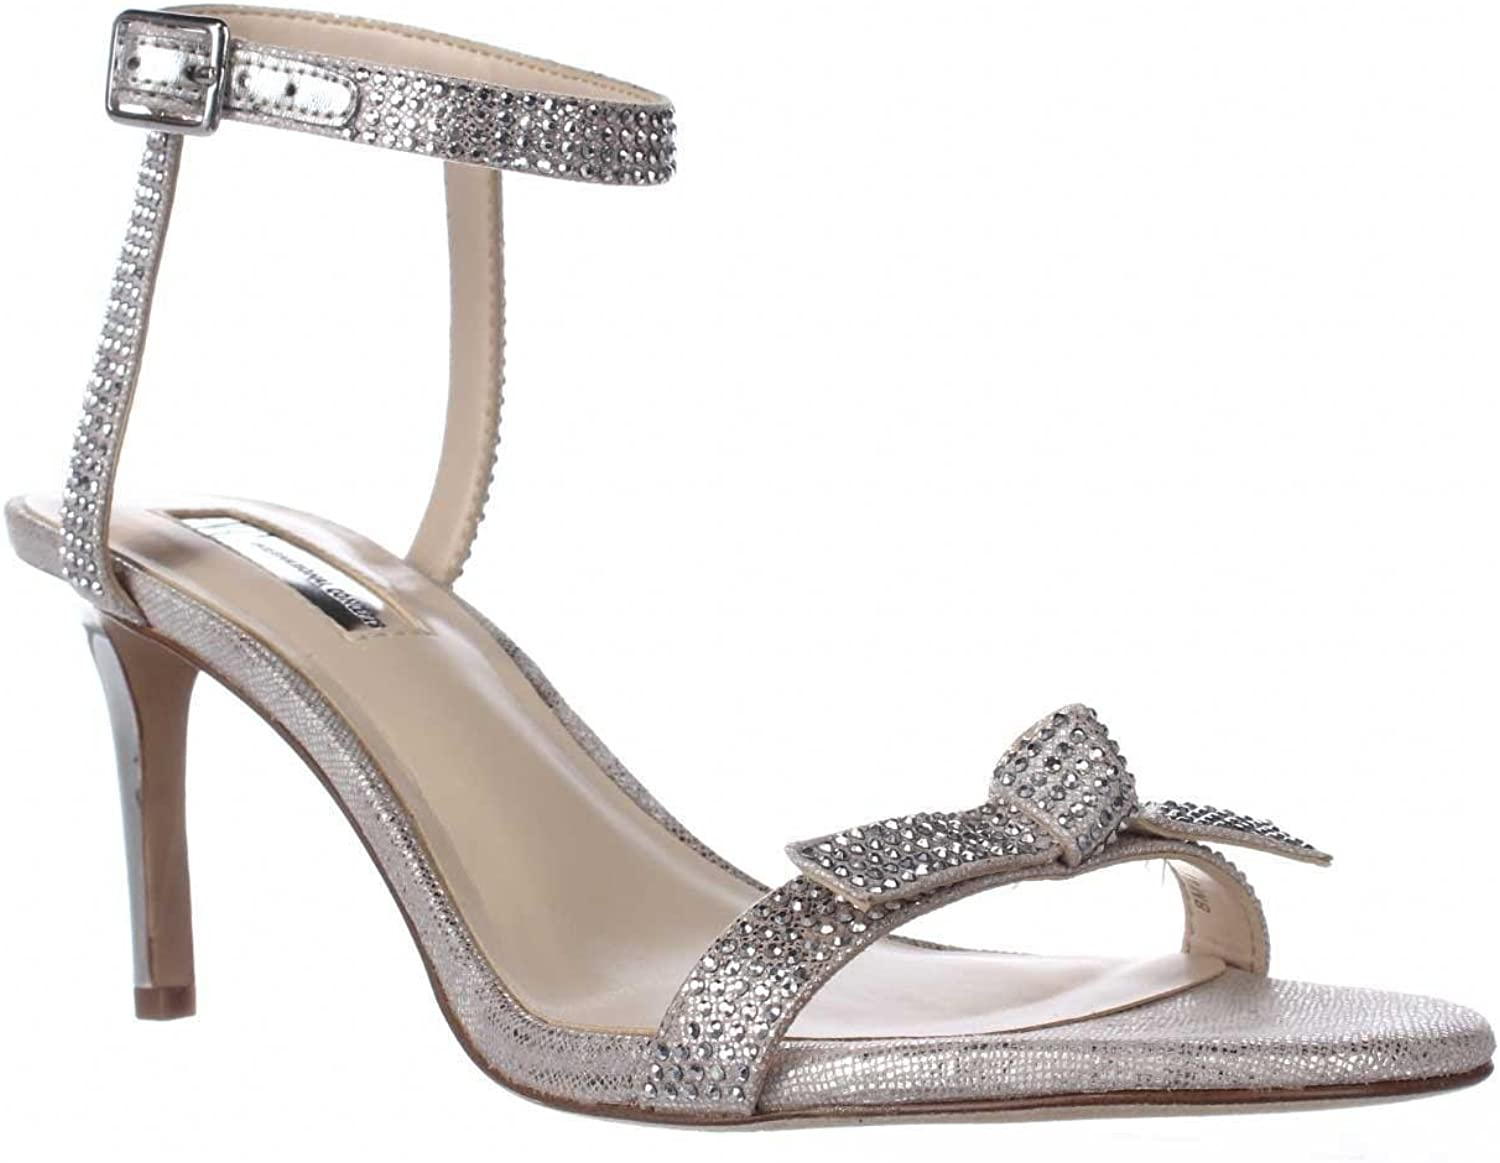 INC International Concepts I35 Laniah Ankle Strap Evening Sandals, Nude